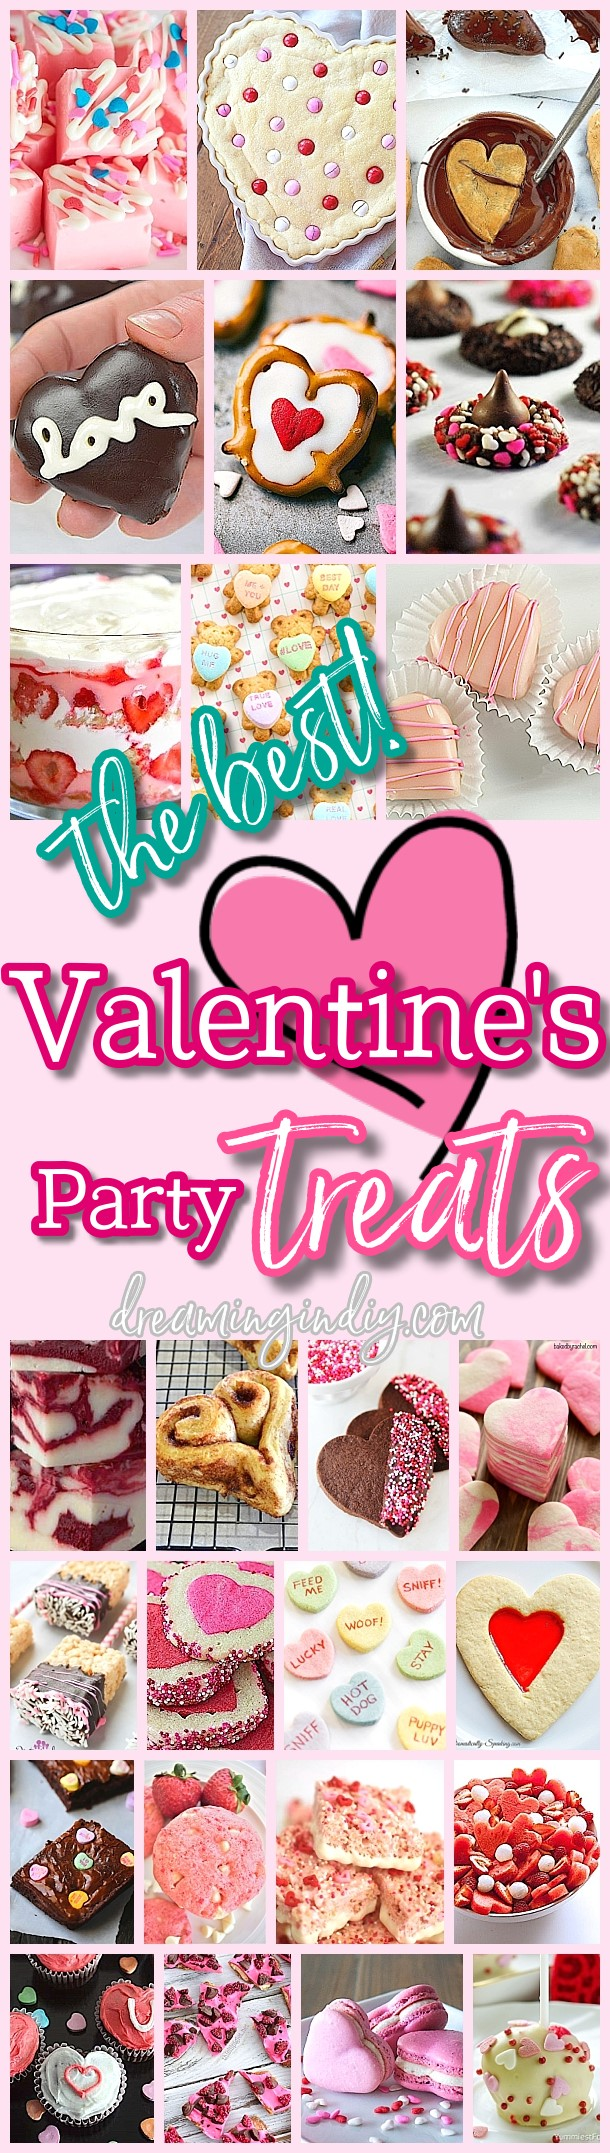 The BEST Easy Valentine's Day Pink and Red Desserts and Heart Shaped Holiday Party Treats Recipes on Dreaming in DIY #valentinesdaydesserts #easyvalentinesdaydesserts #valentinesdaytreats #pinkandred #pinkdesserts #reddesserts #valentinesdayparty #valentinesday #heartshapedtreats #hearts #love